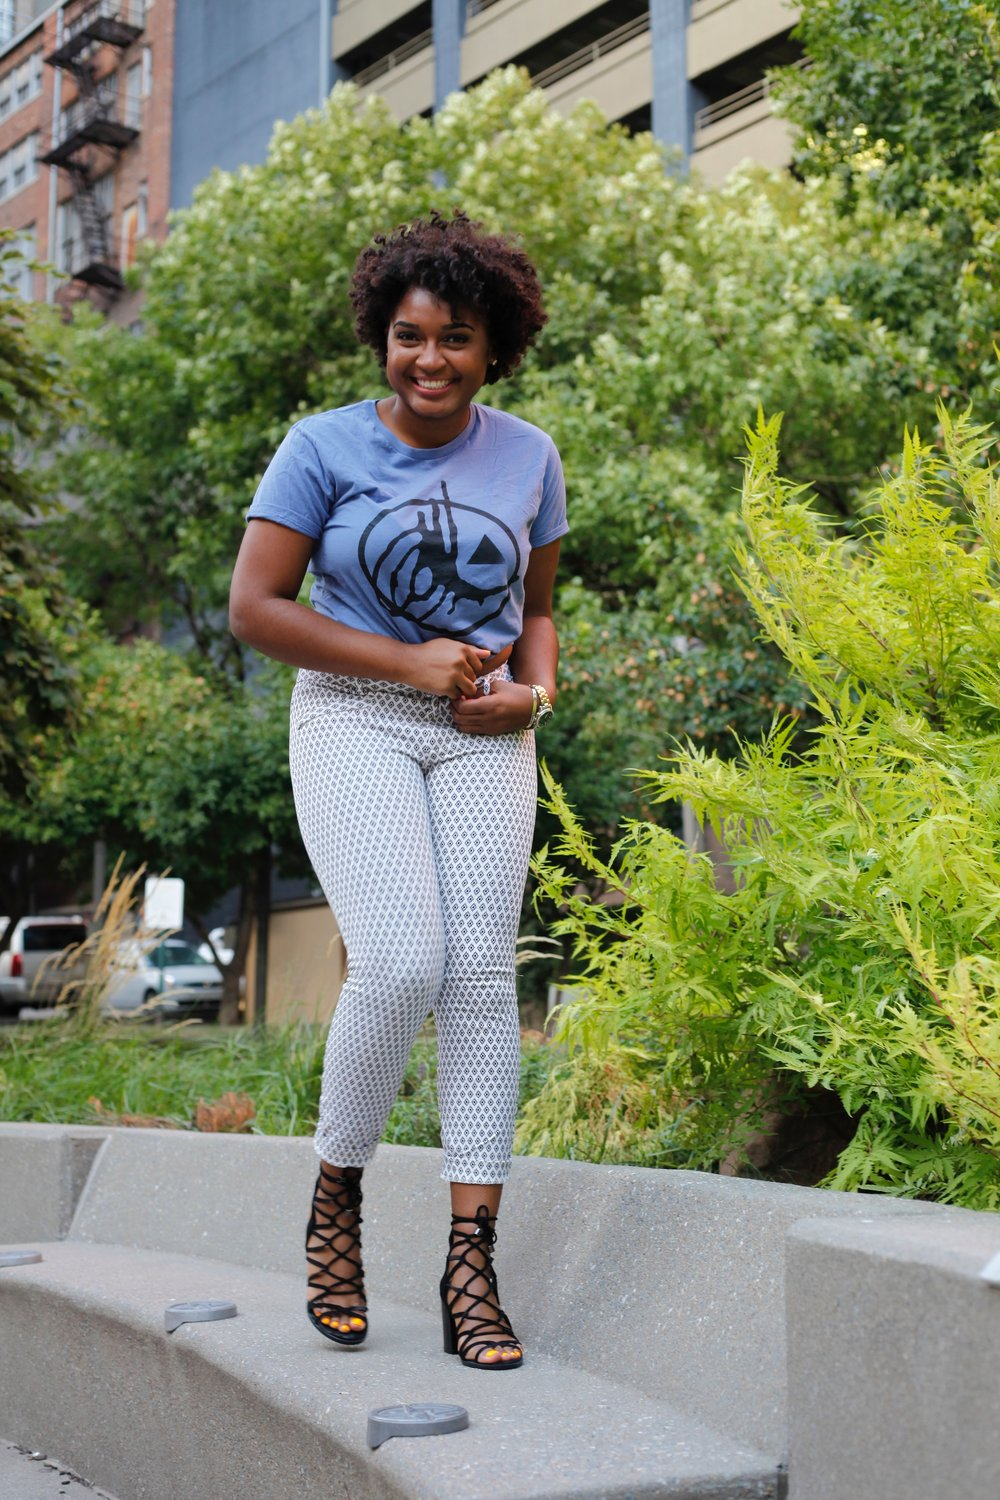 White Printed Trousers + Black Strappy Heels by jasmine cooper of jasminediane.com. Black bloggers in Kansas City. Fashion.